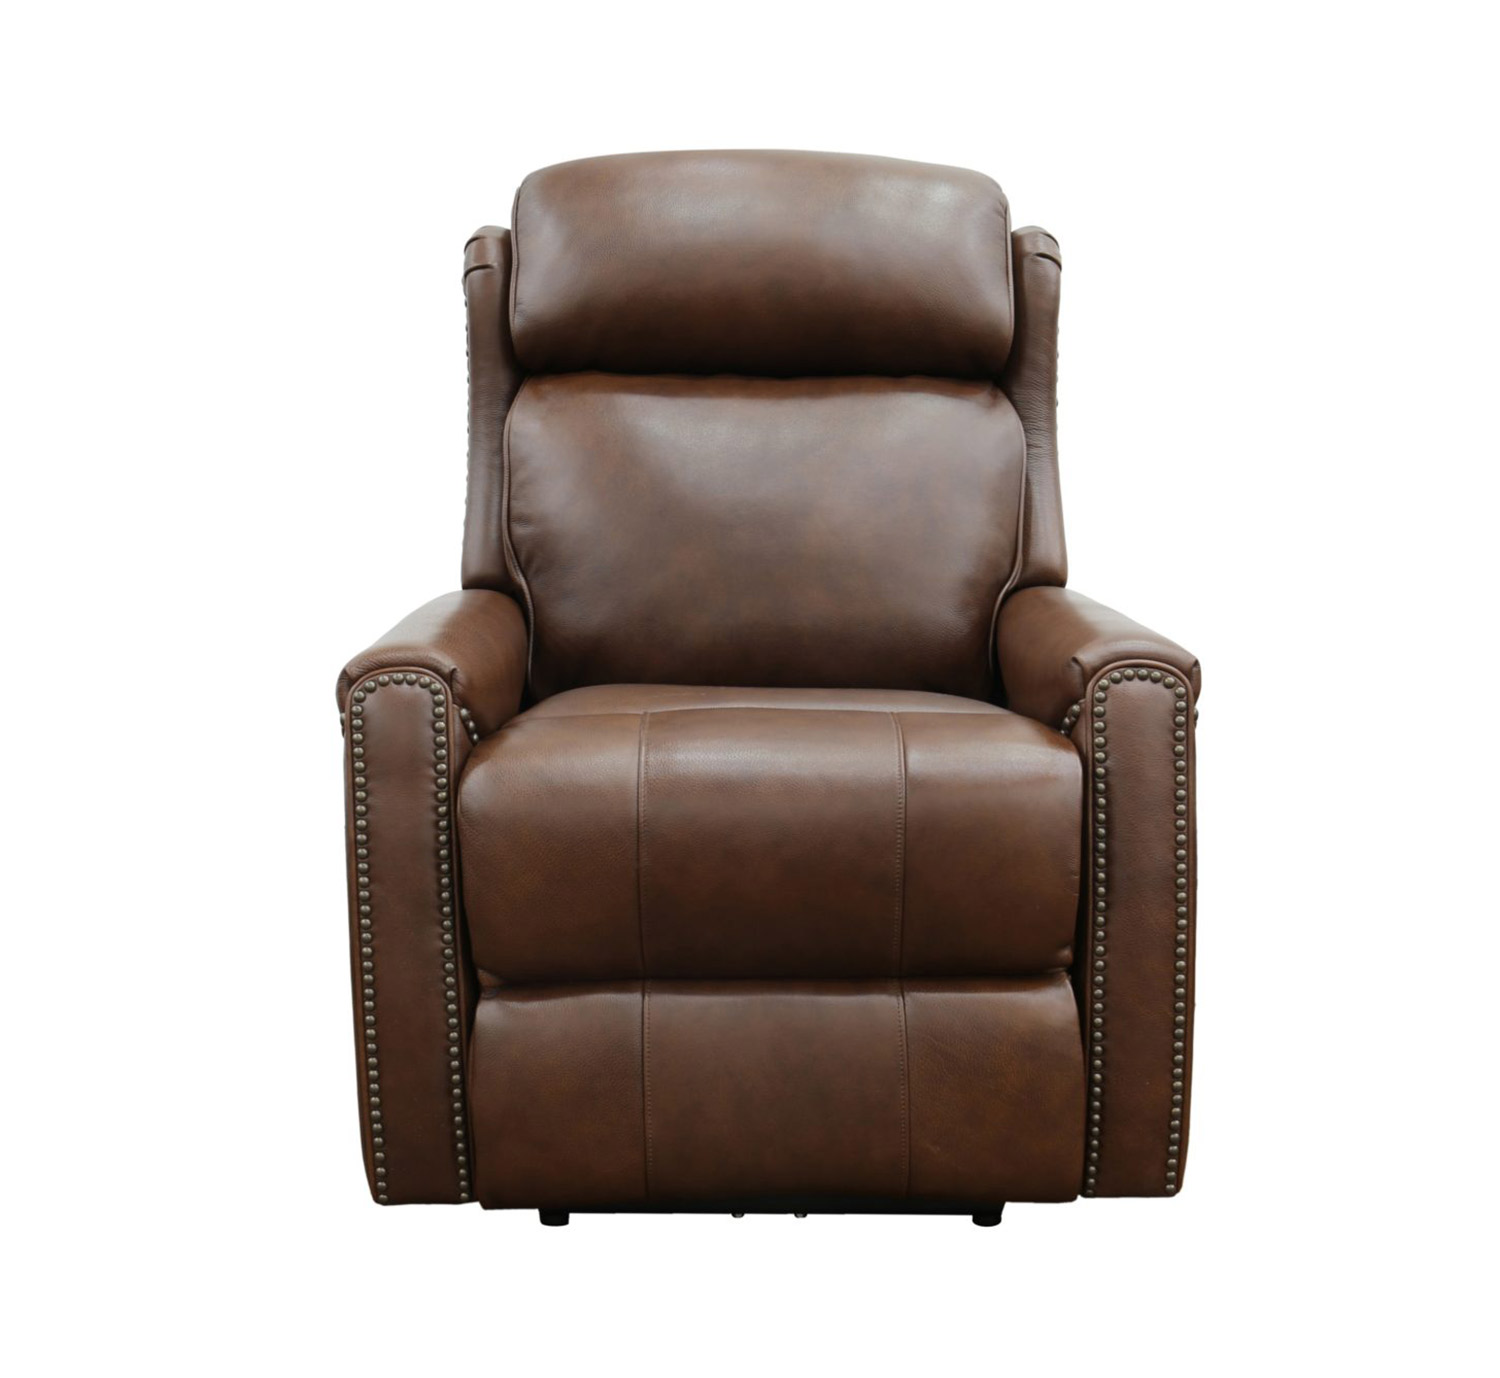 Barcalounger Montana Power Recliner Chair with Power Head Rest - Shoreham Chocolate/all leather